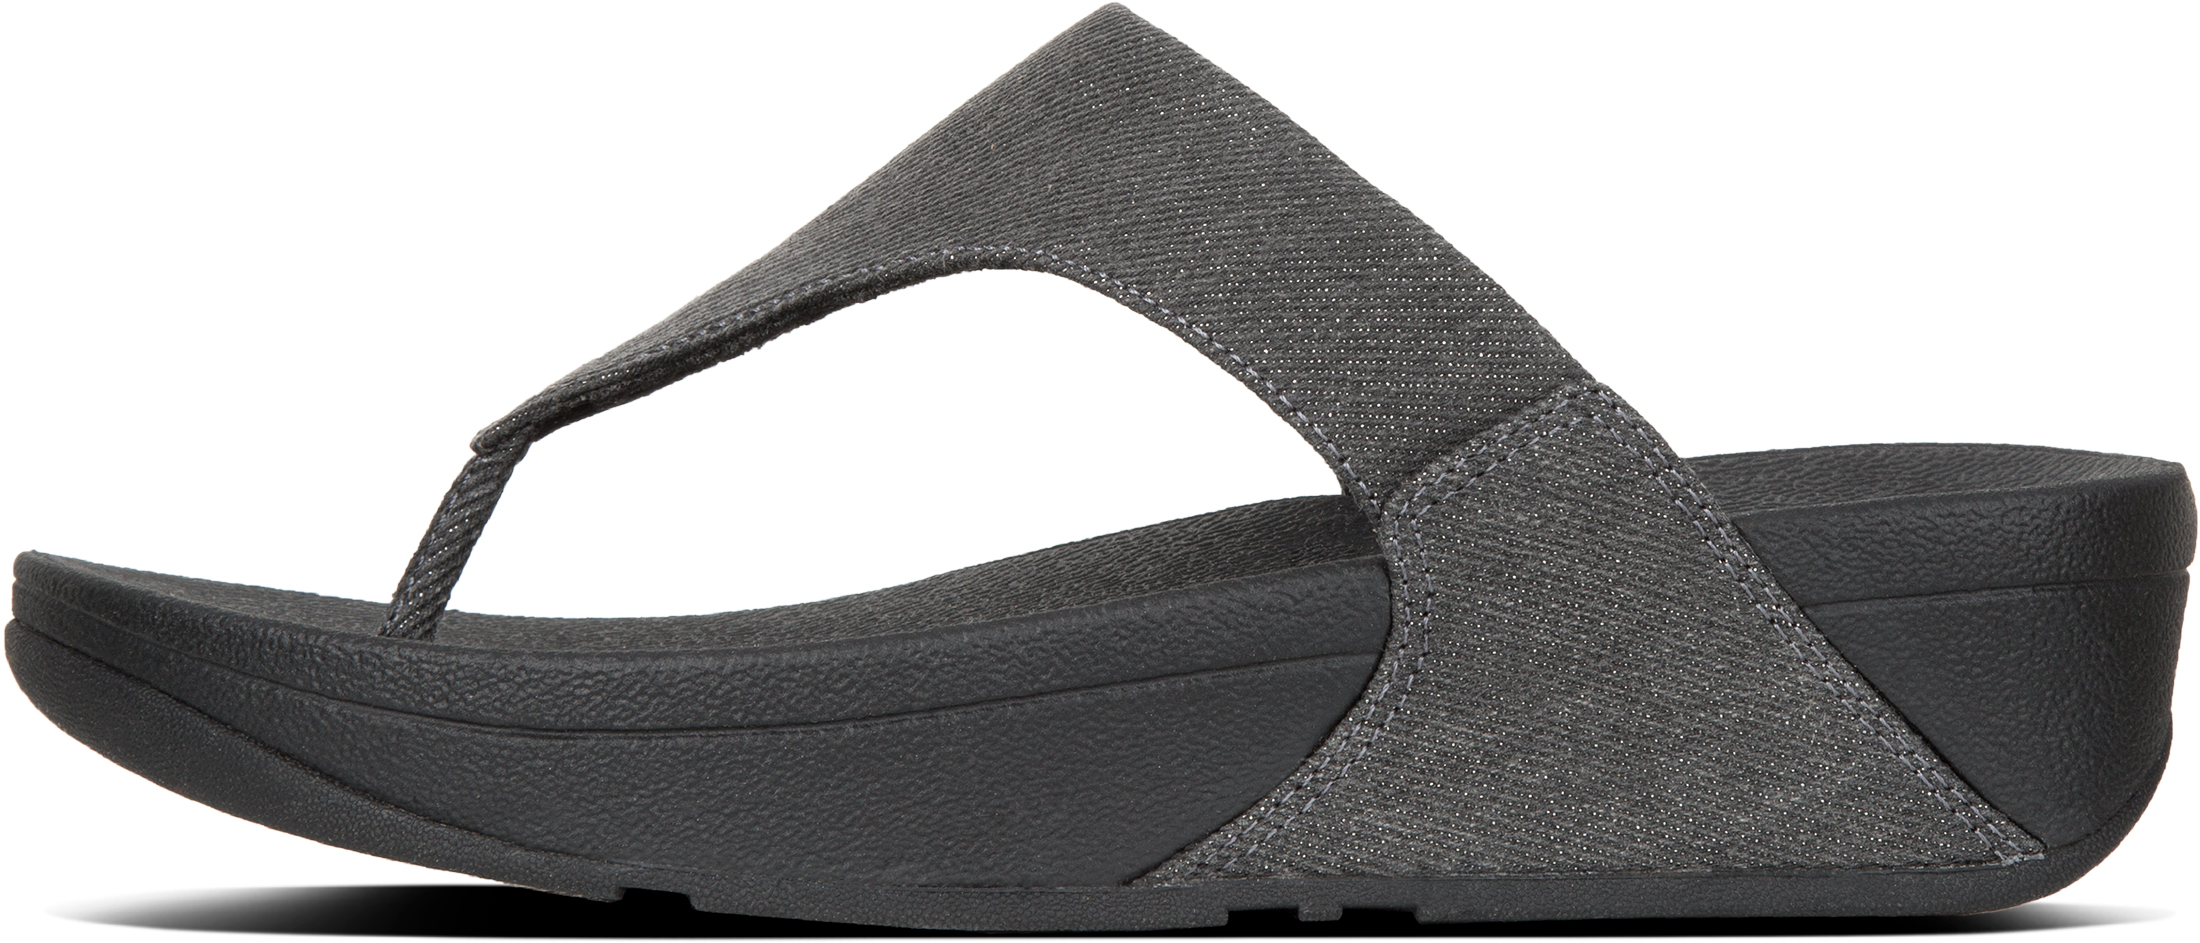 1765704209bb FitFlop Lulu Toe Thong Post Black Shimmer Denim Ladies Sandals Boxed ...